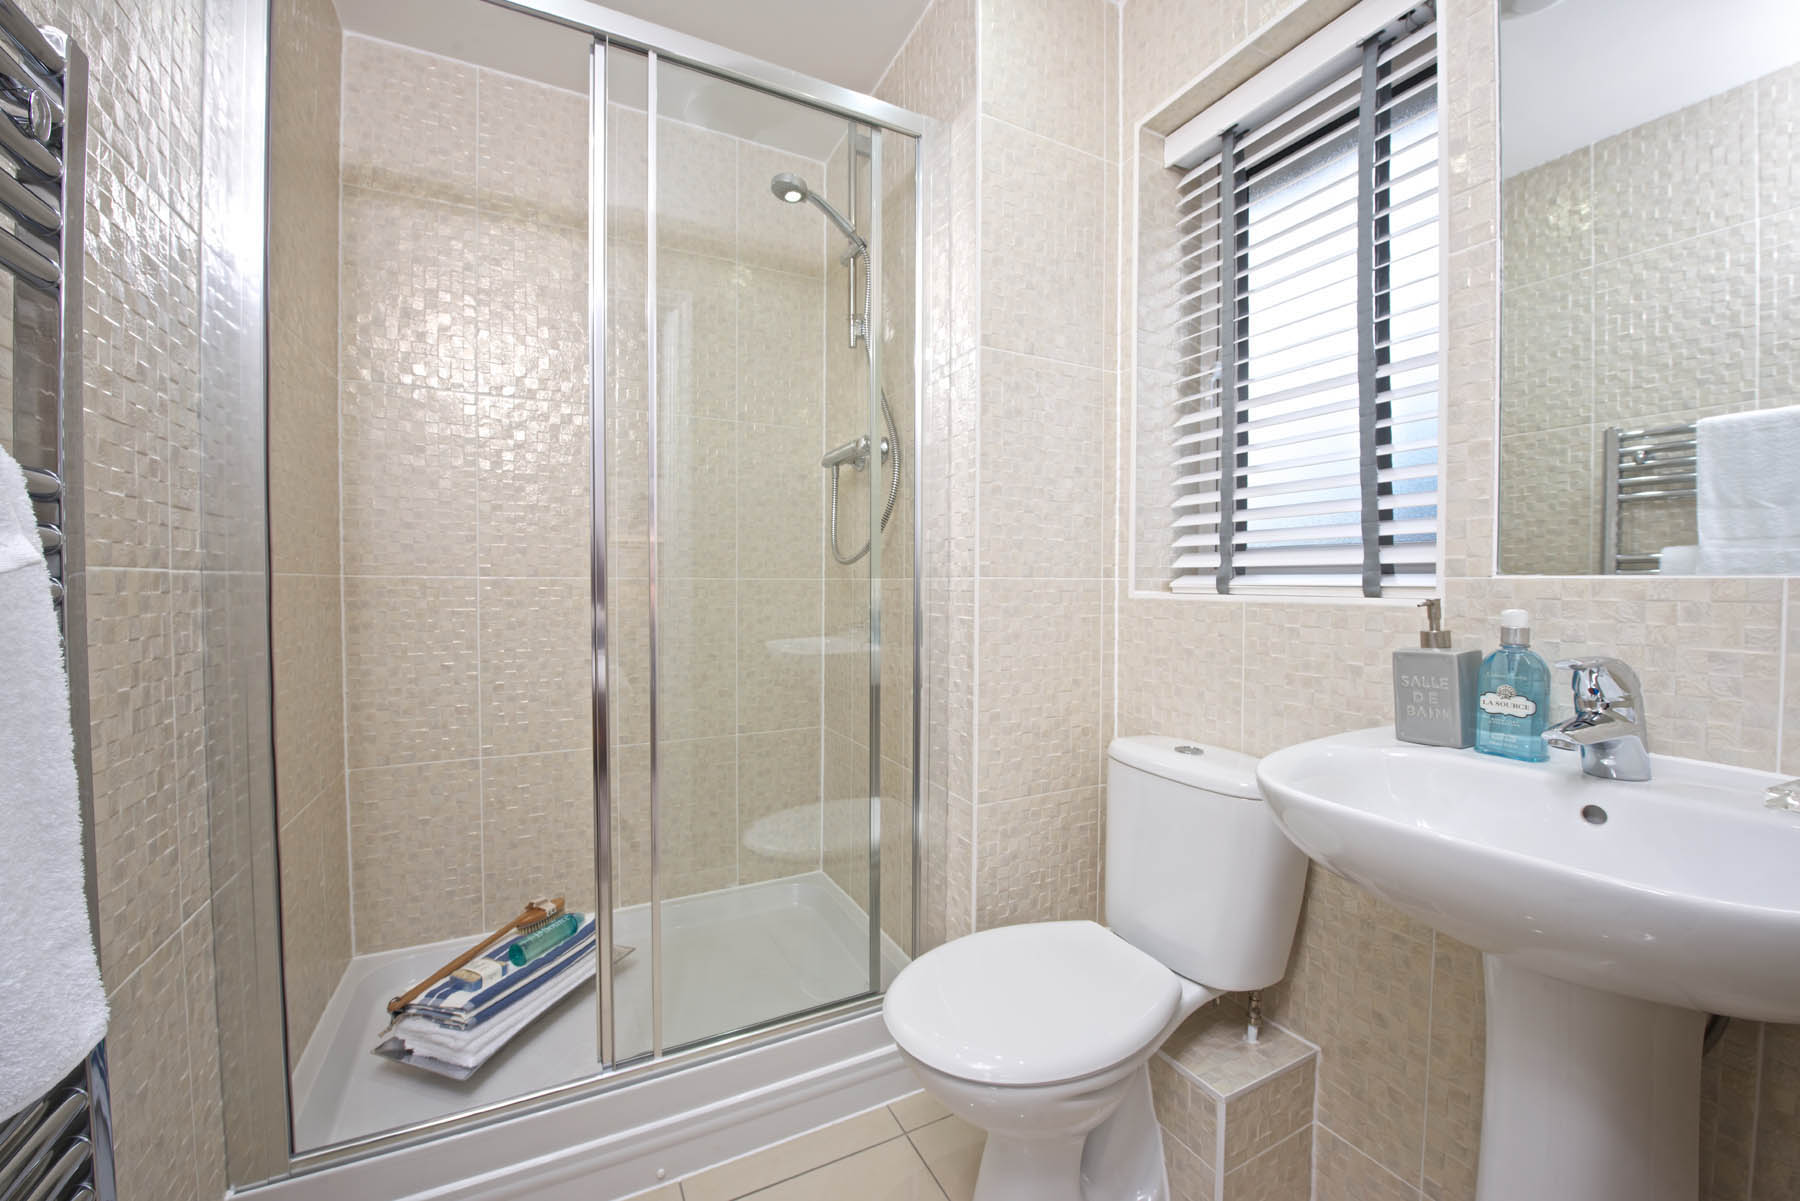 Eskdale en suite shower room